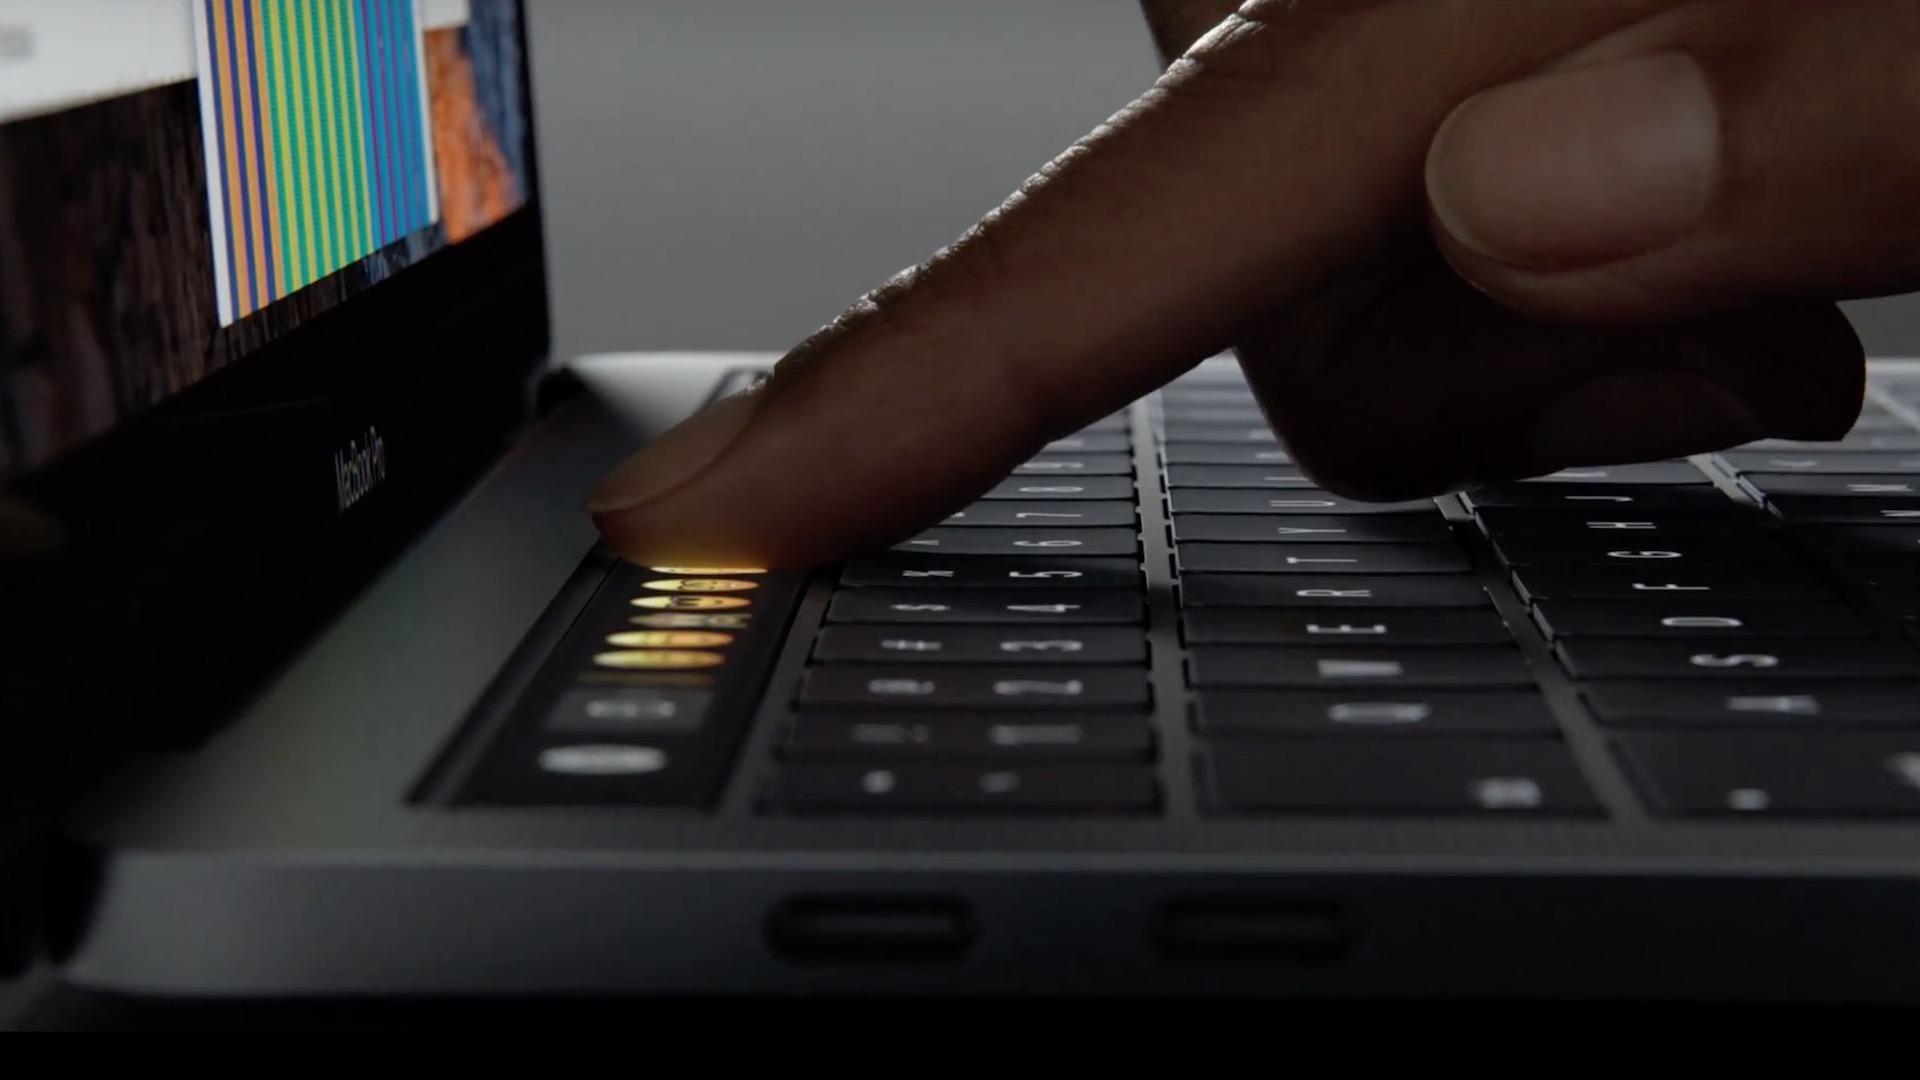 macbook-pro-touch-bar-28102016-in2